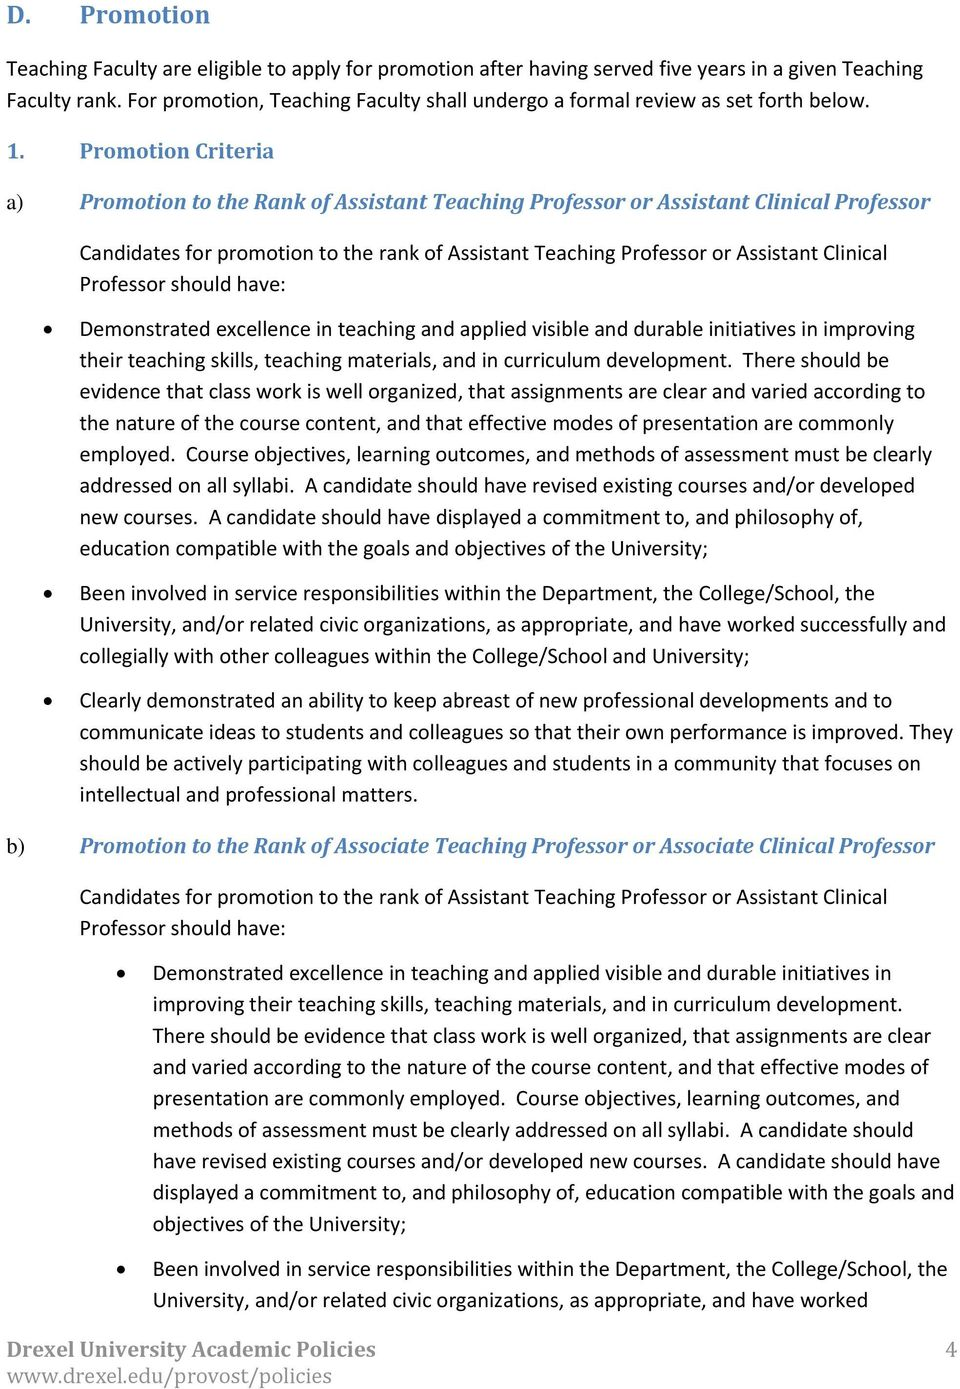 Promotion Criteria a) Promotion to the Rank of Assistant Teaching Professor or Assistant Clinical Professor Candidates for promotion to the rank of Assistant Teaching Professor or Assistant Clinical